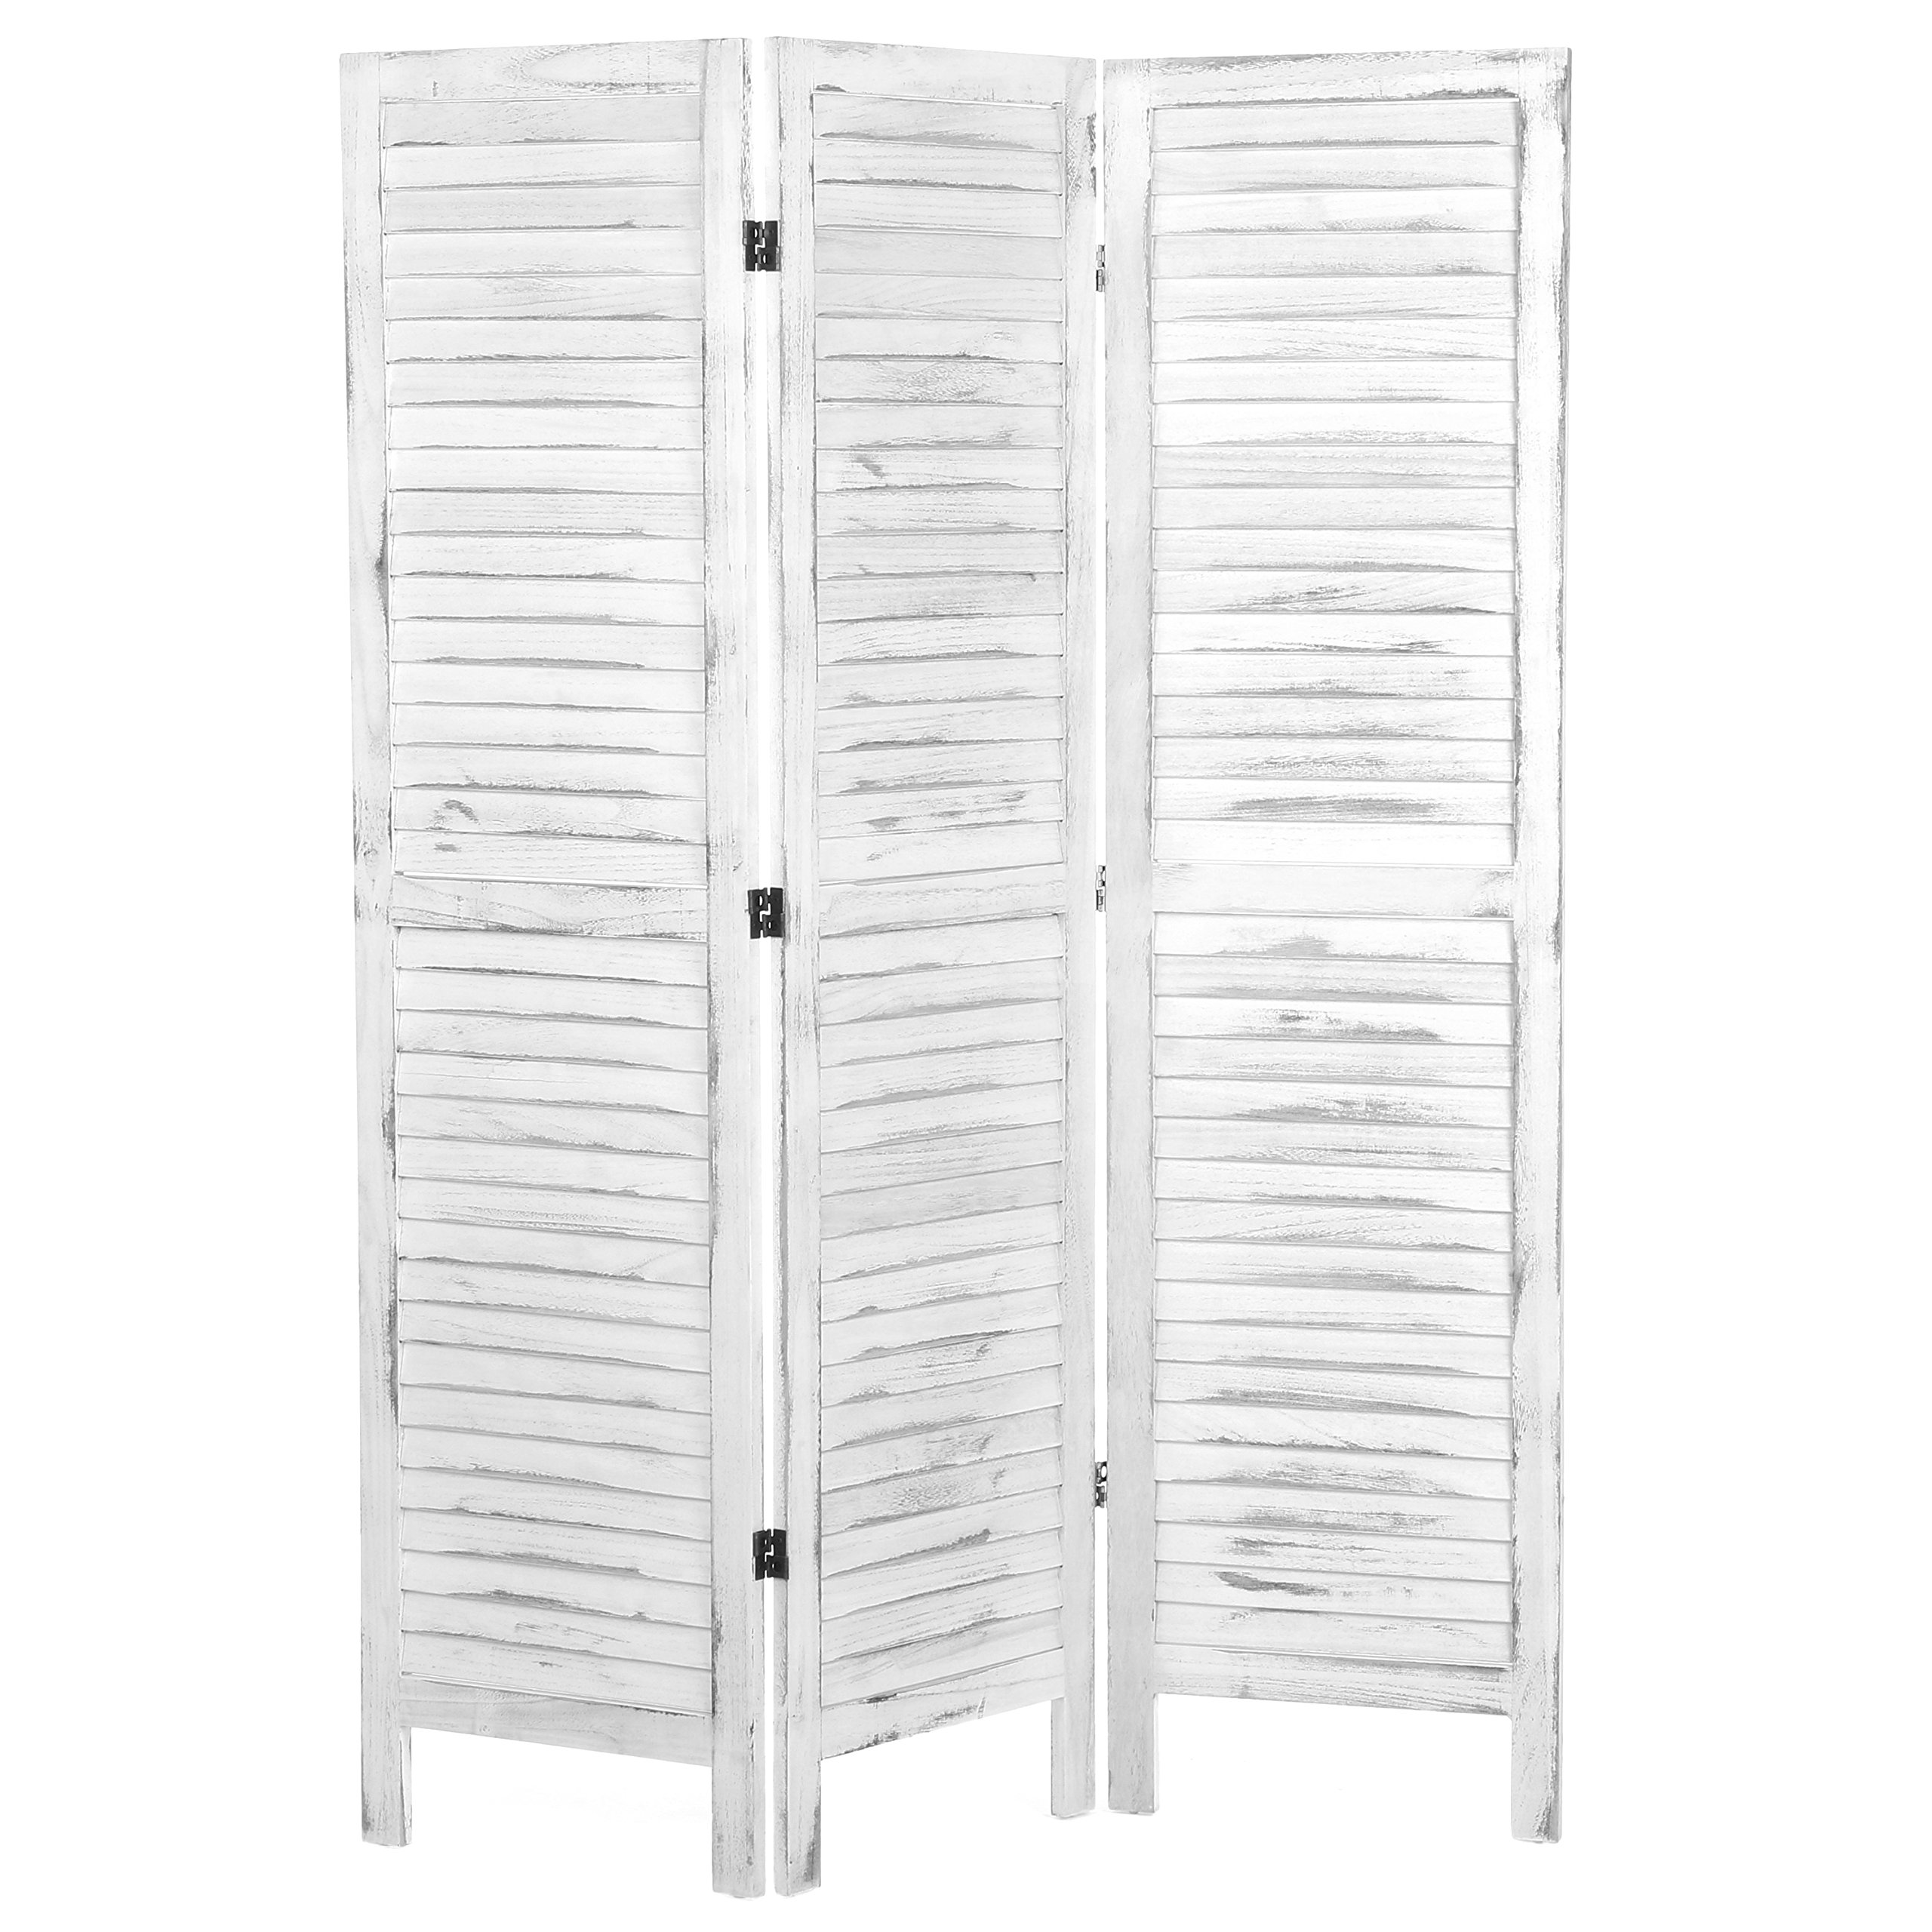 MyGift Whitewashed Wood 3 Panel Screen, Folding Louvered Room Divider by MyGift